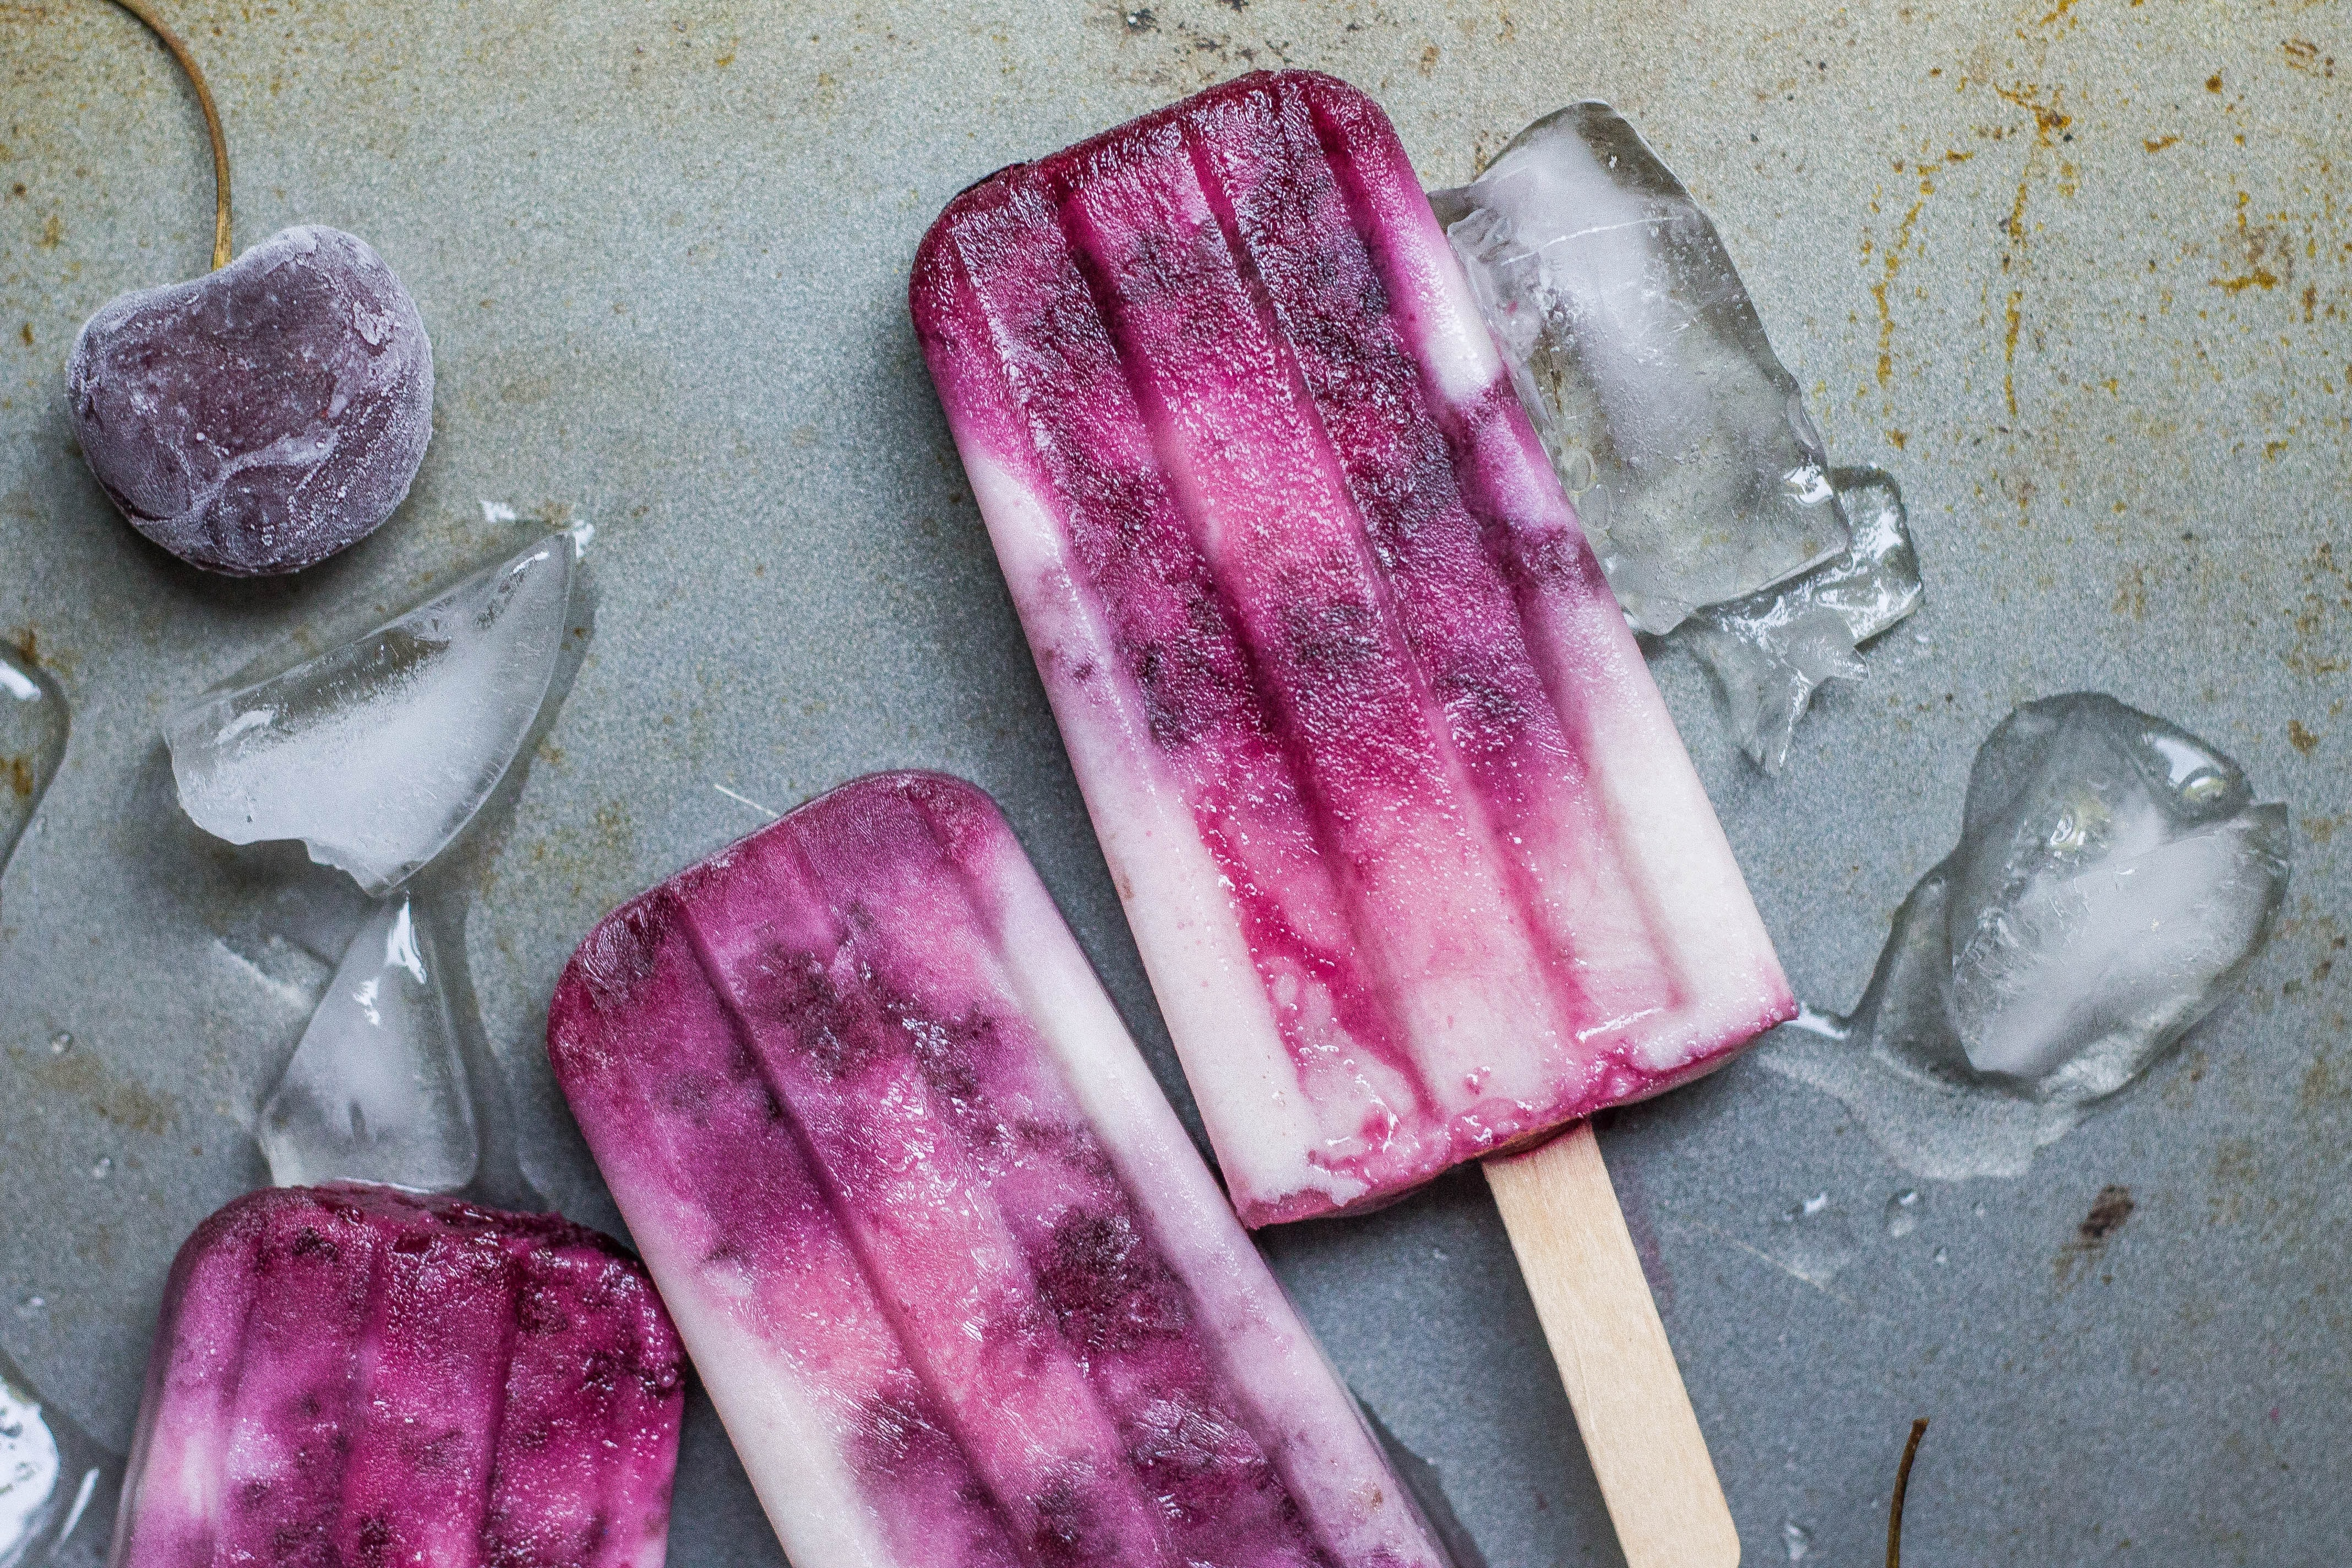 purple and white ice pop lying on wet ground with ice